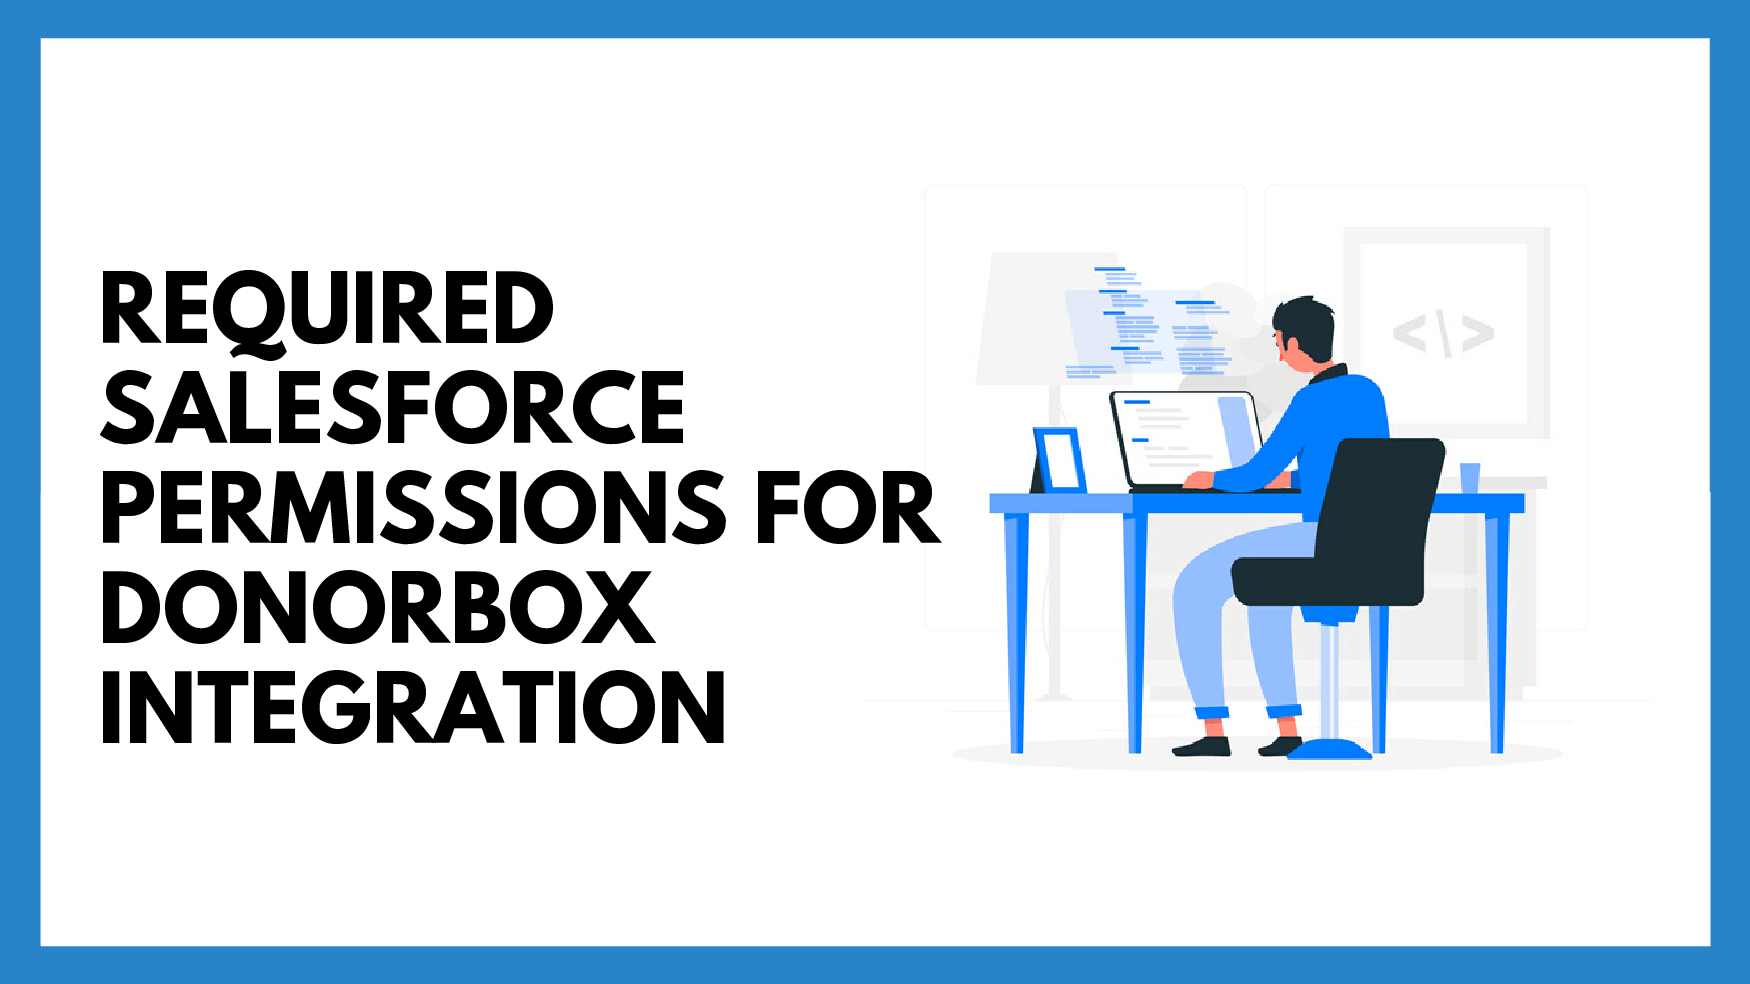 Required Salesforce Permissions for Donorbox Integration